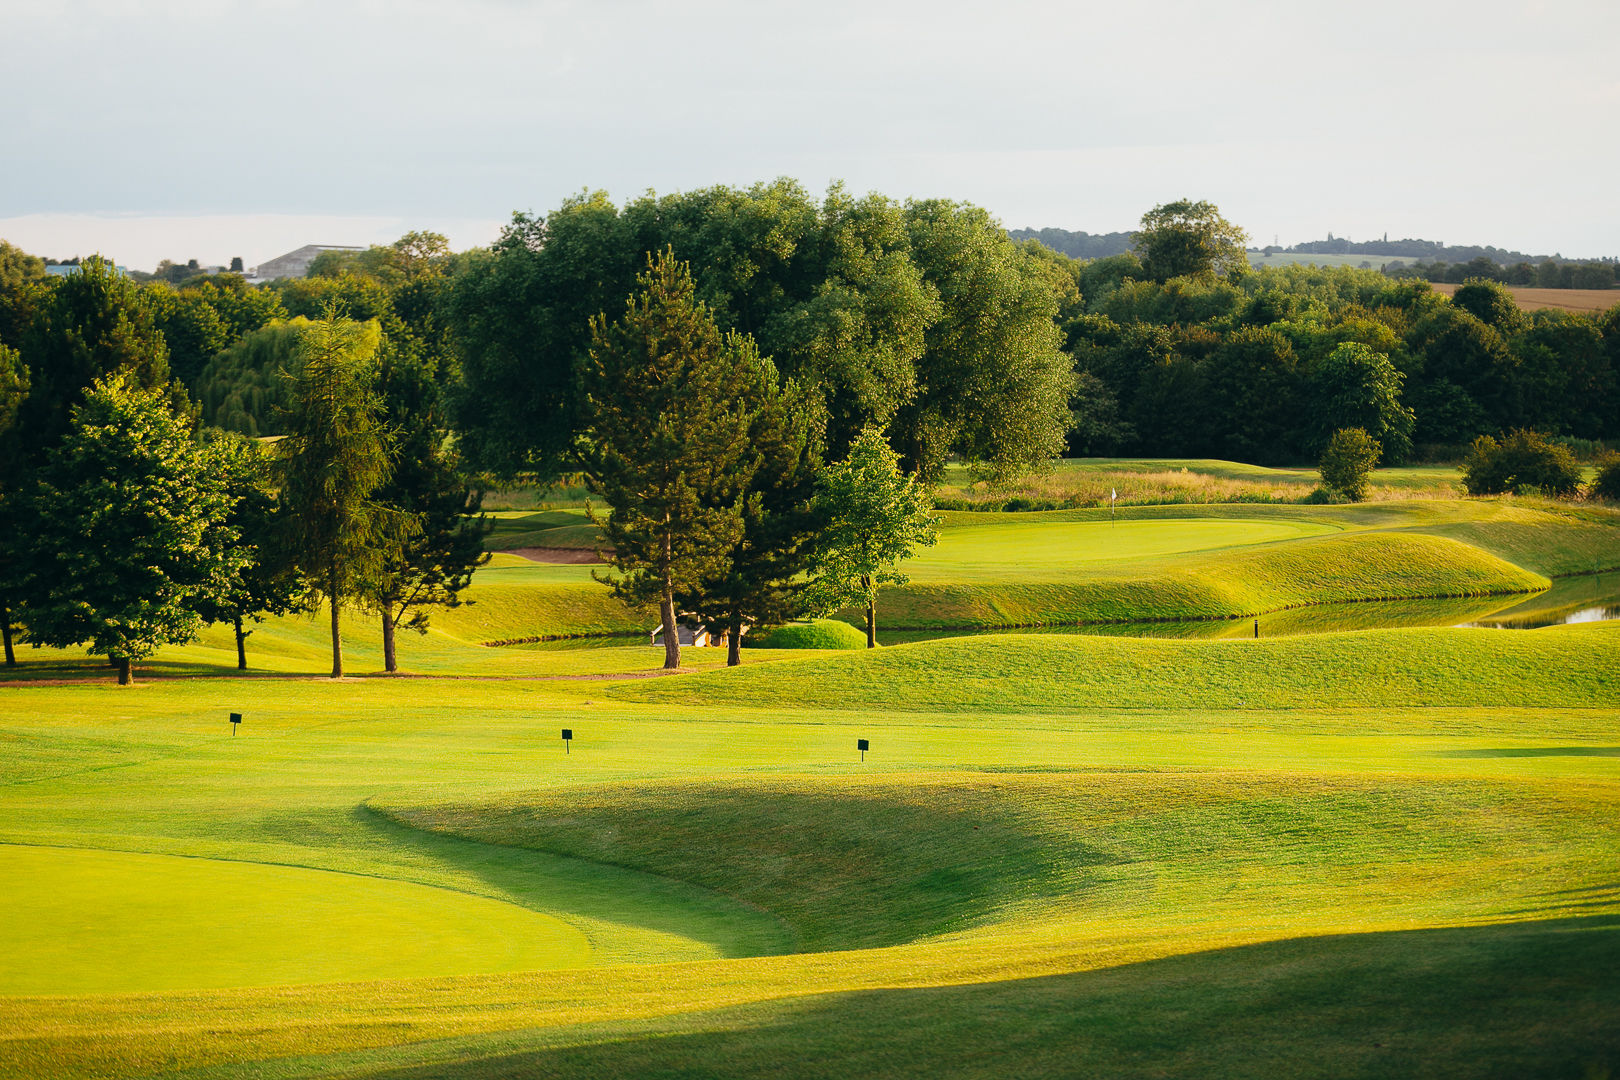 The nottinghamshire golf and country club cover picture